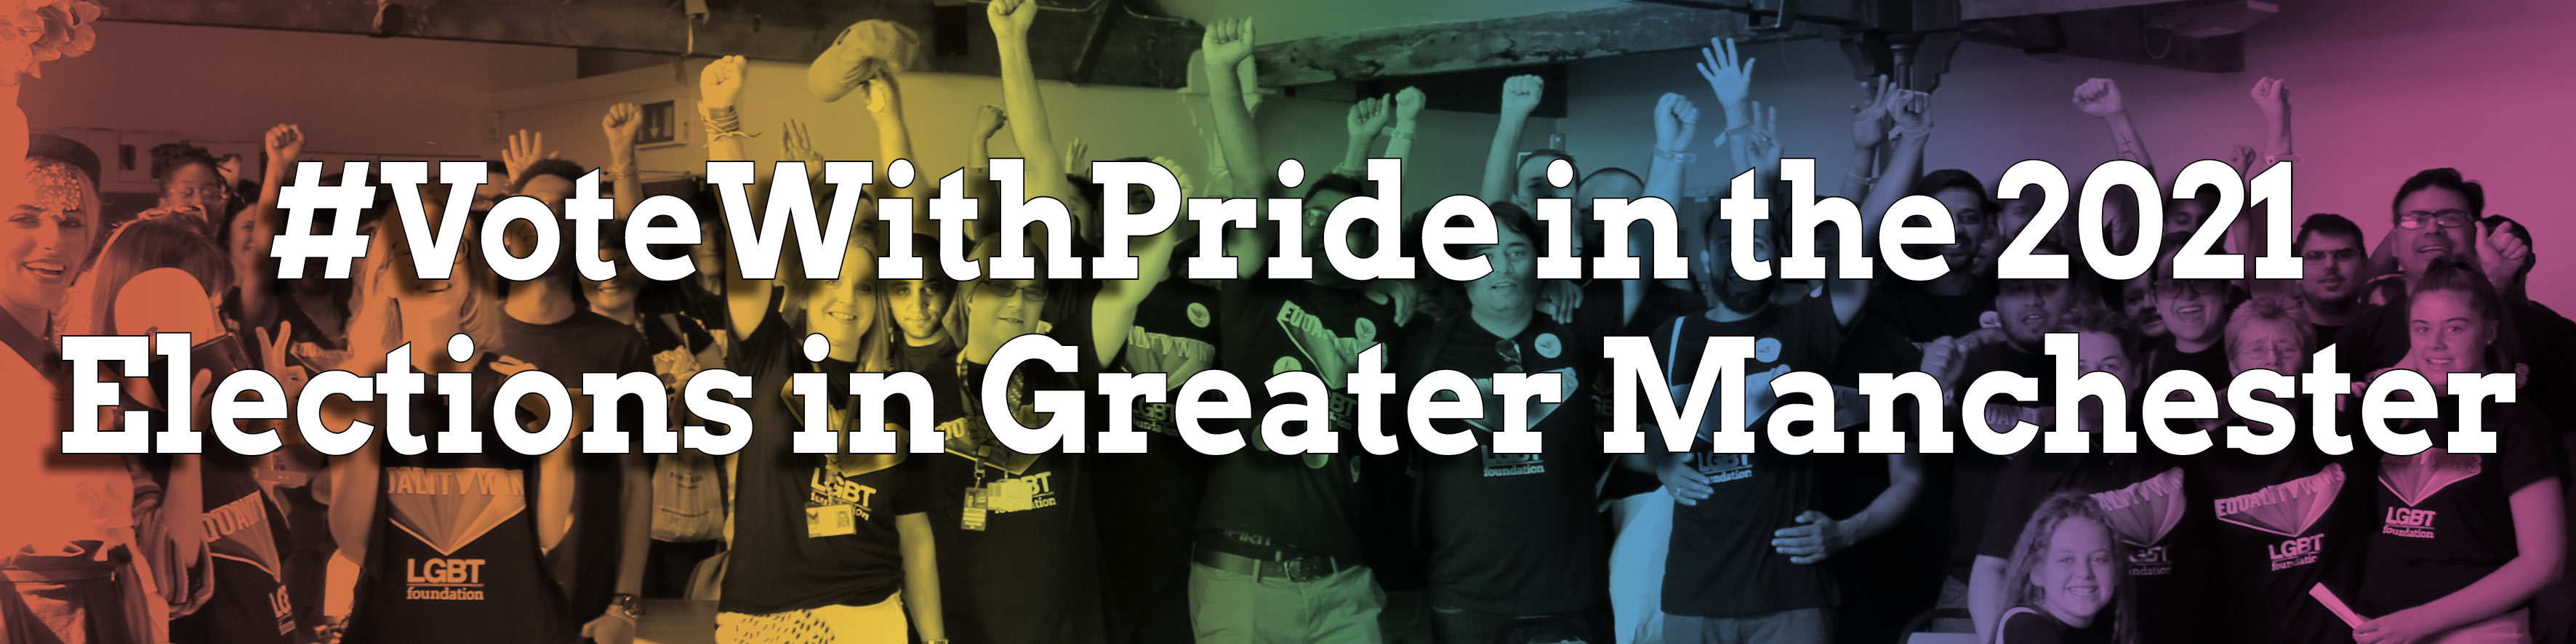 Vote With Pride in the 2021 elections in Greater Manchester